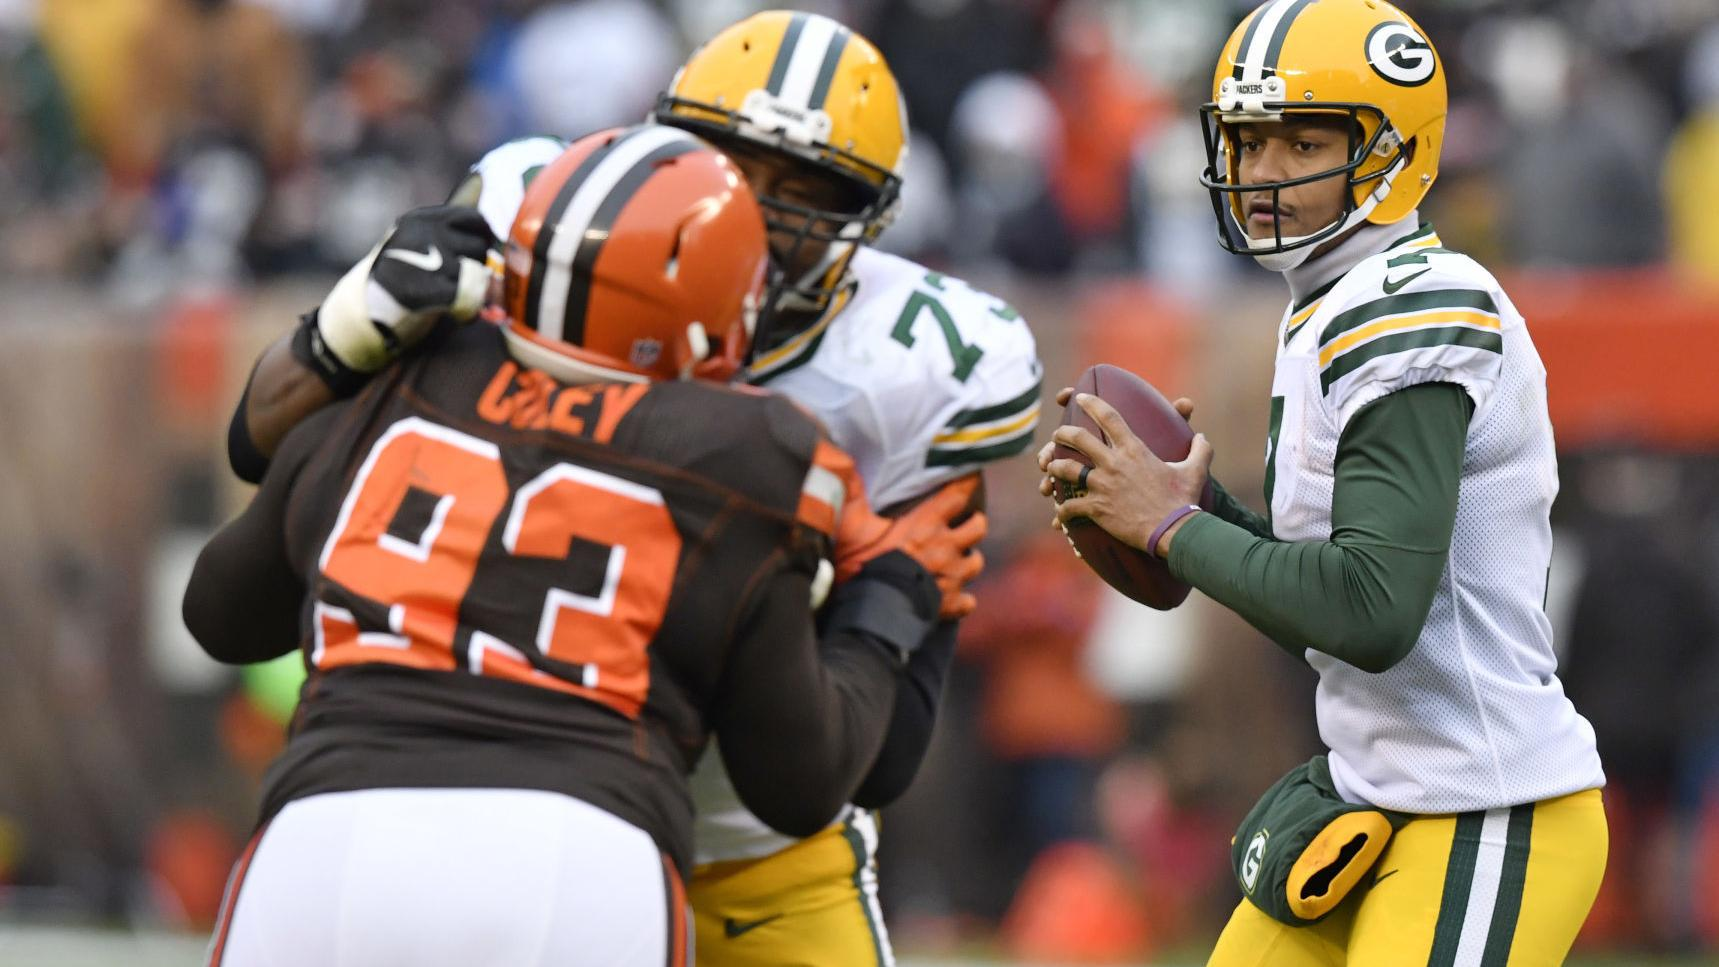 Brett Hundley returns to the bench knowing he did his part